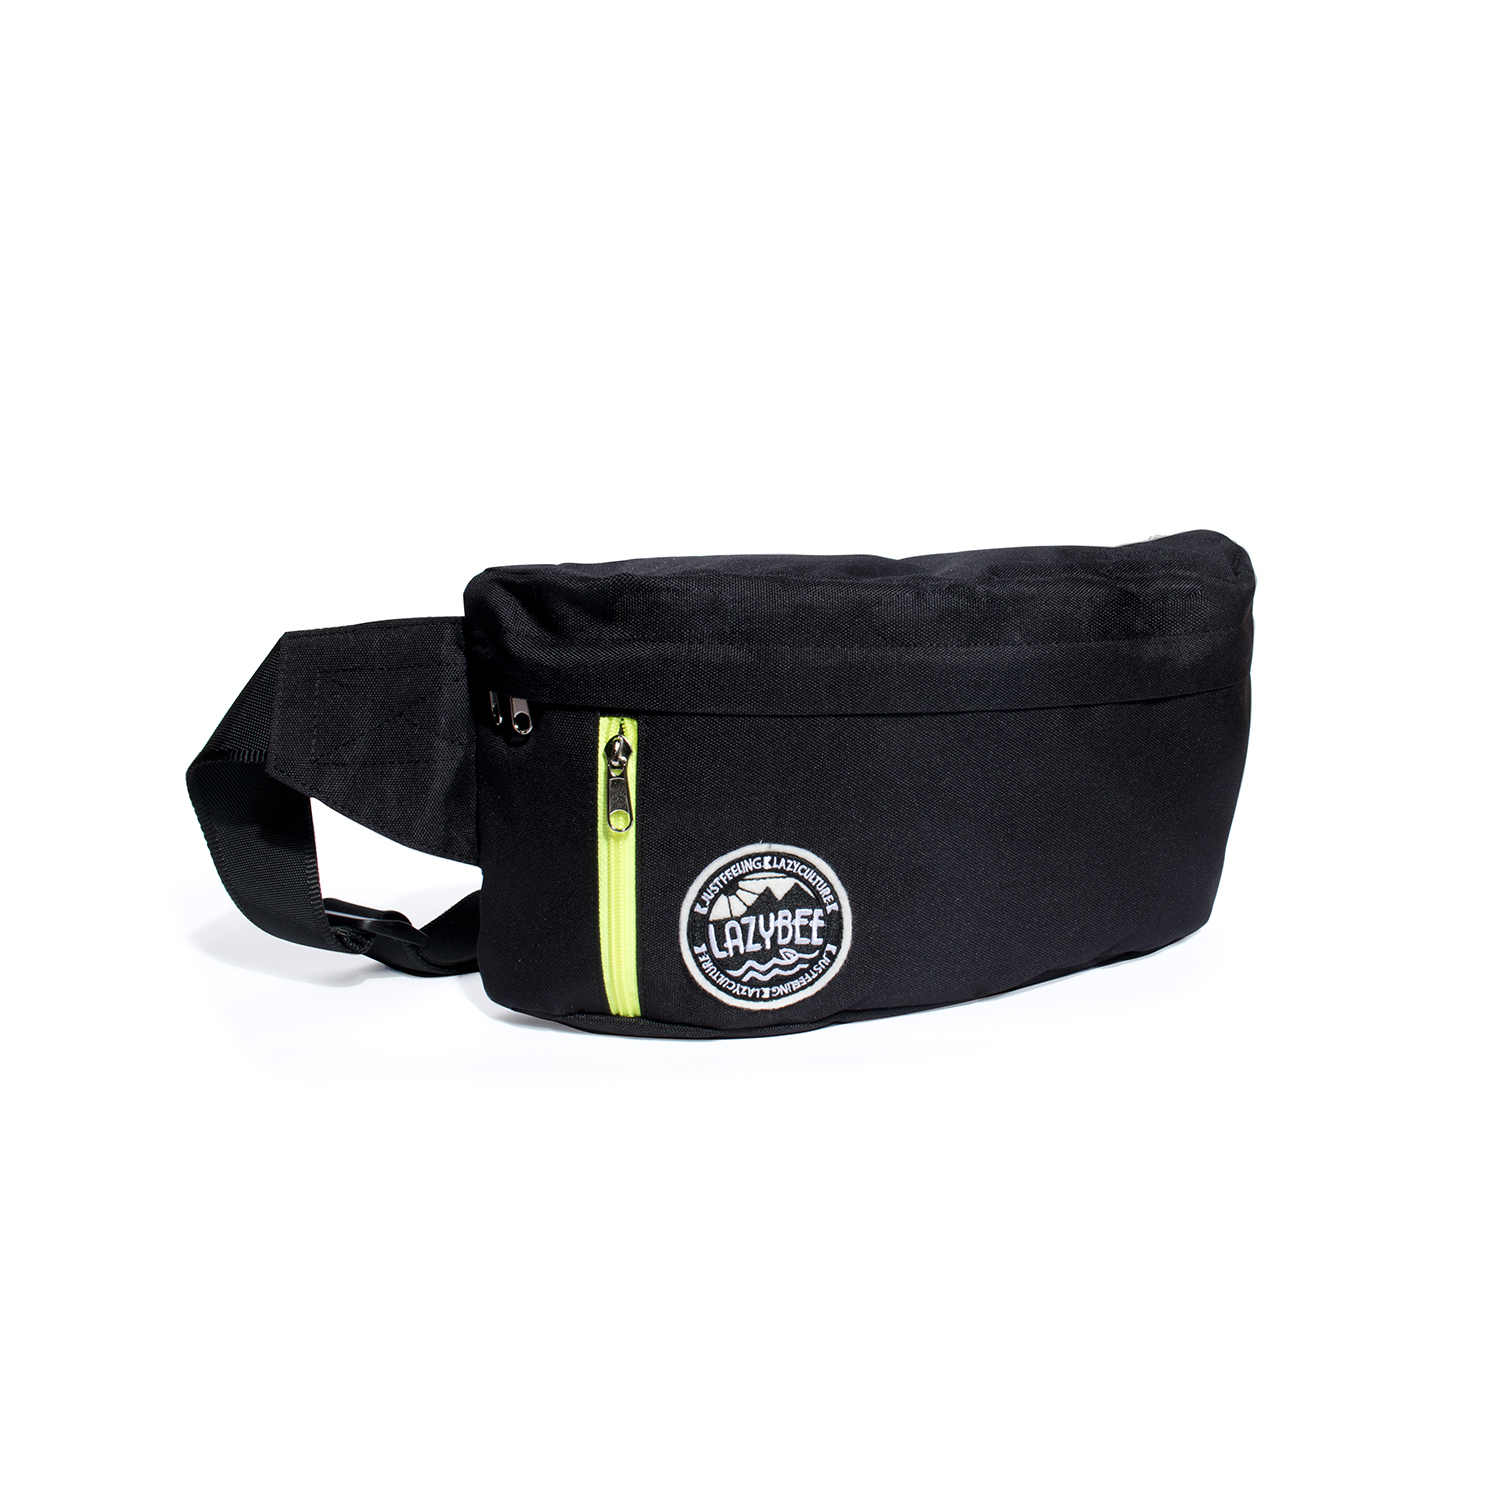 how to get pictures from computer to iphone lazybee doria waist bag 7l black 20880